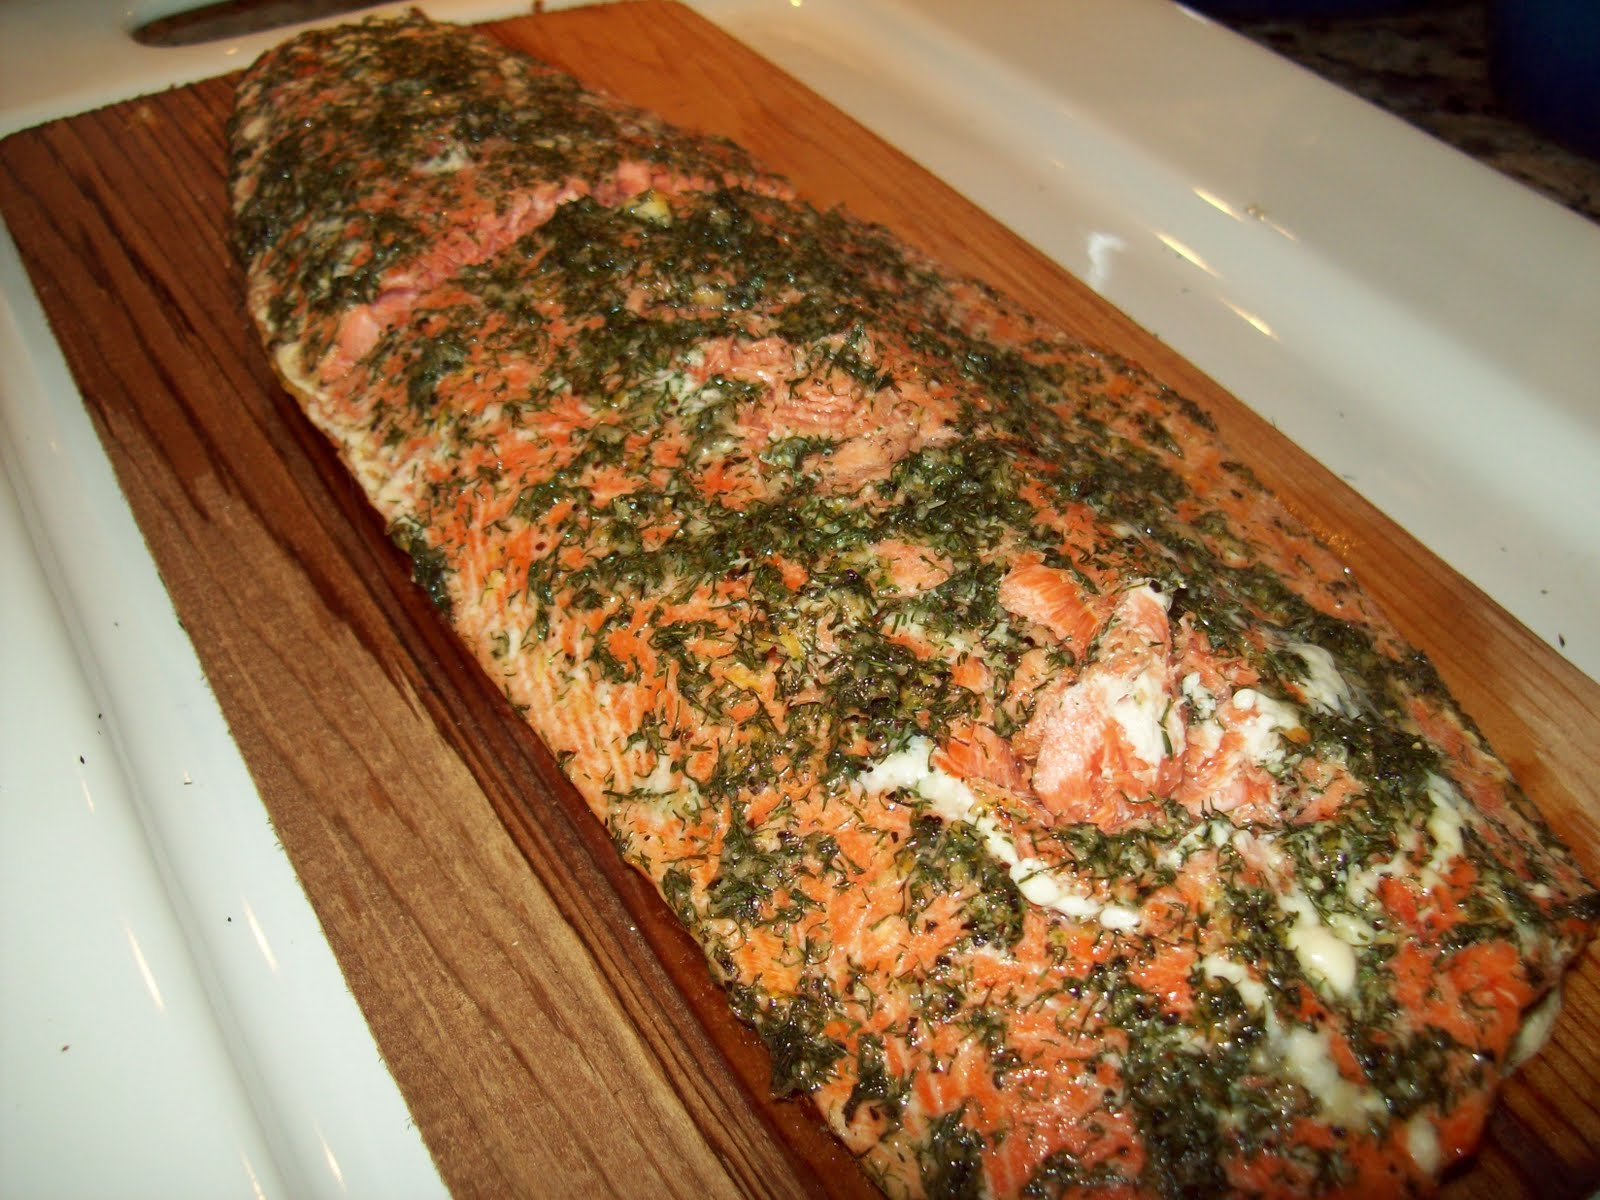 Lori's Test Kitchen: Dill Cedar Plank Salmon